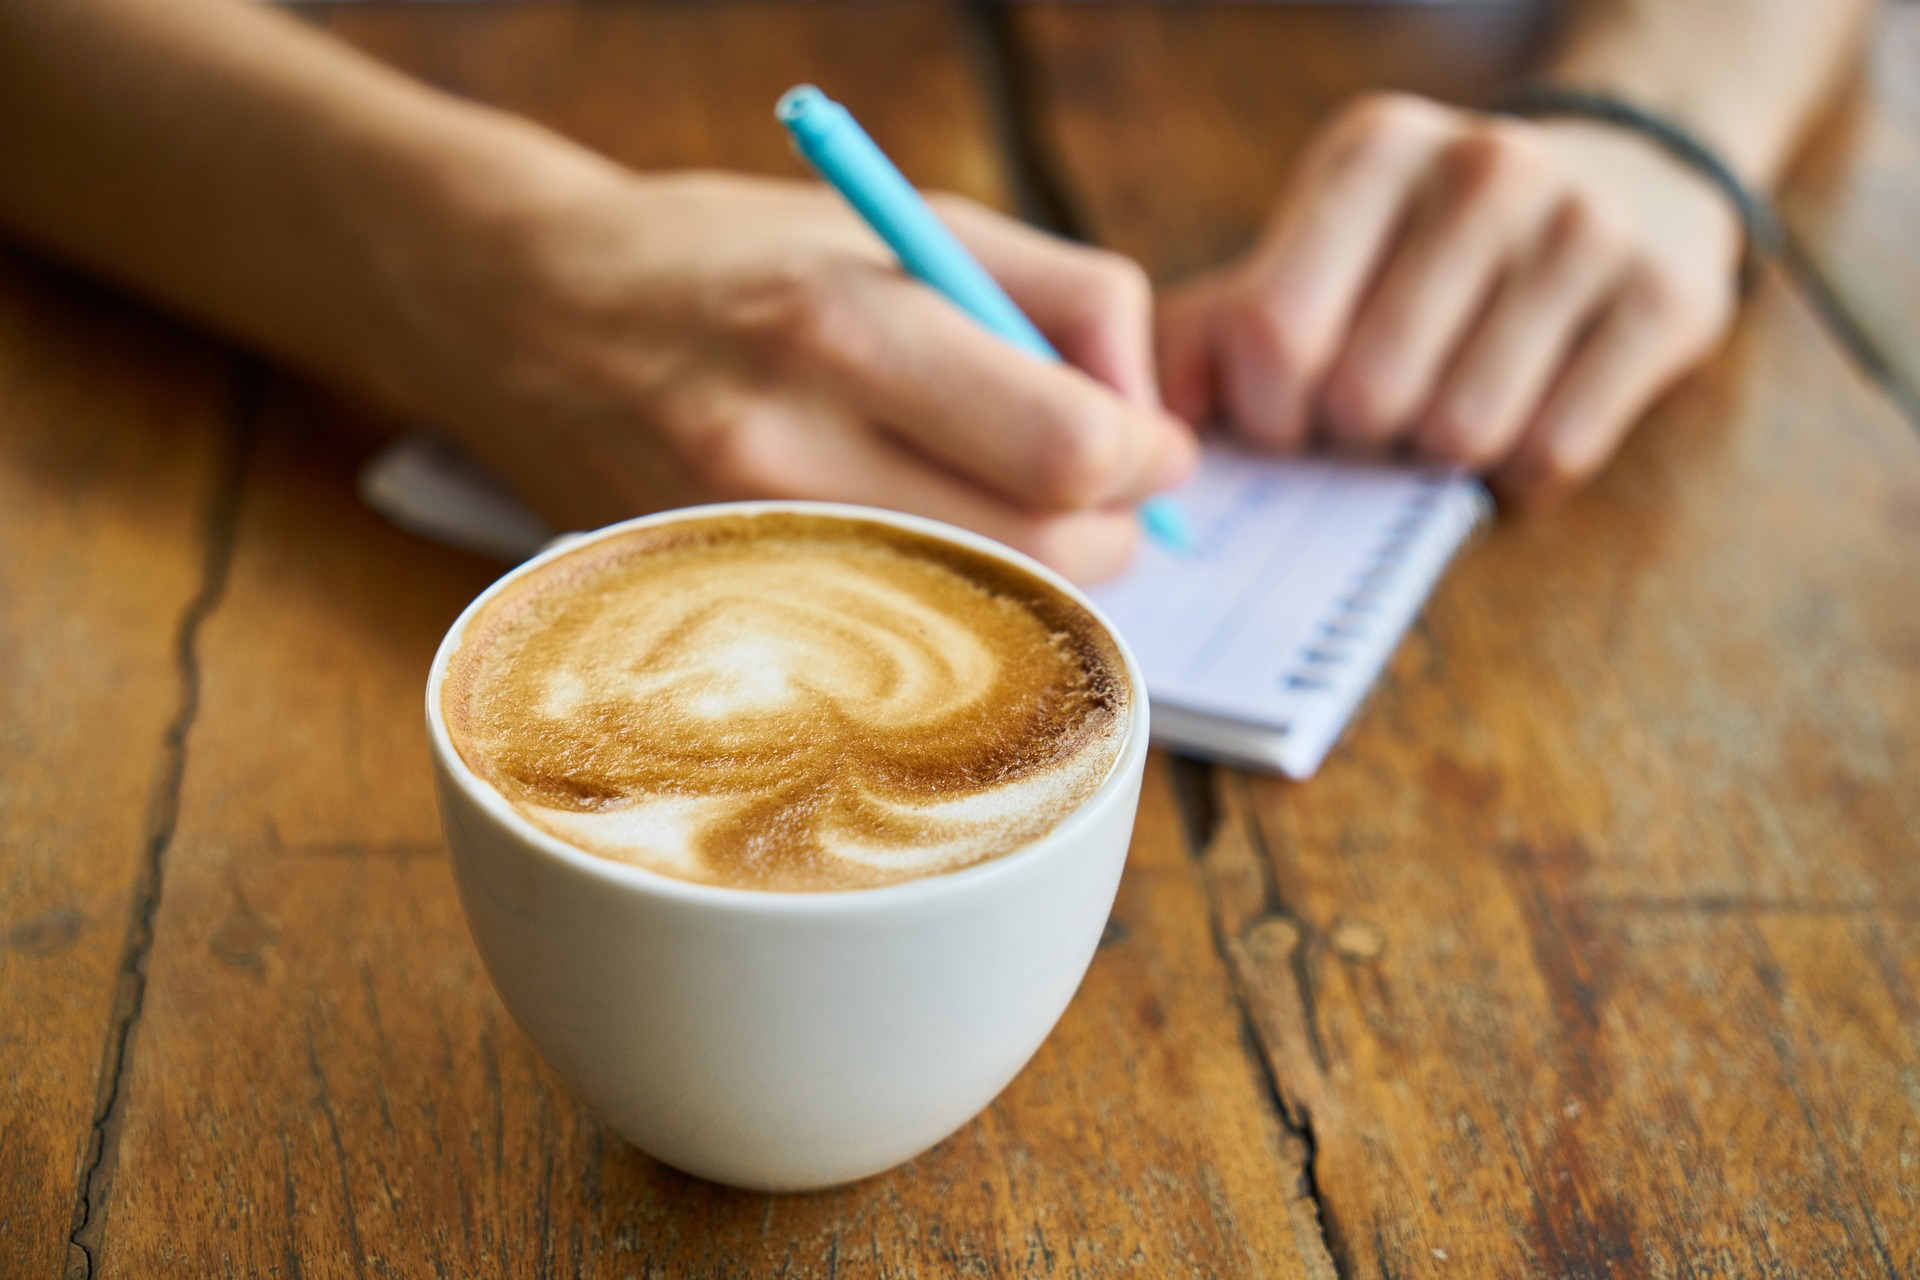 Contact us. - Questions? We love them. Coffee and a chat about how we can help? Sounds great.Get in touch and we promise to get back to you pronto.e: info@beactivelyengaged.comt: 0800 195 1989